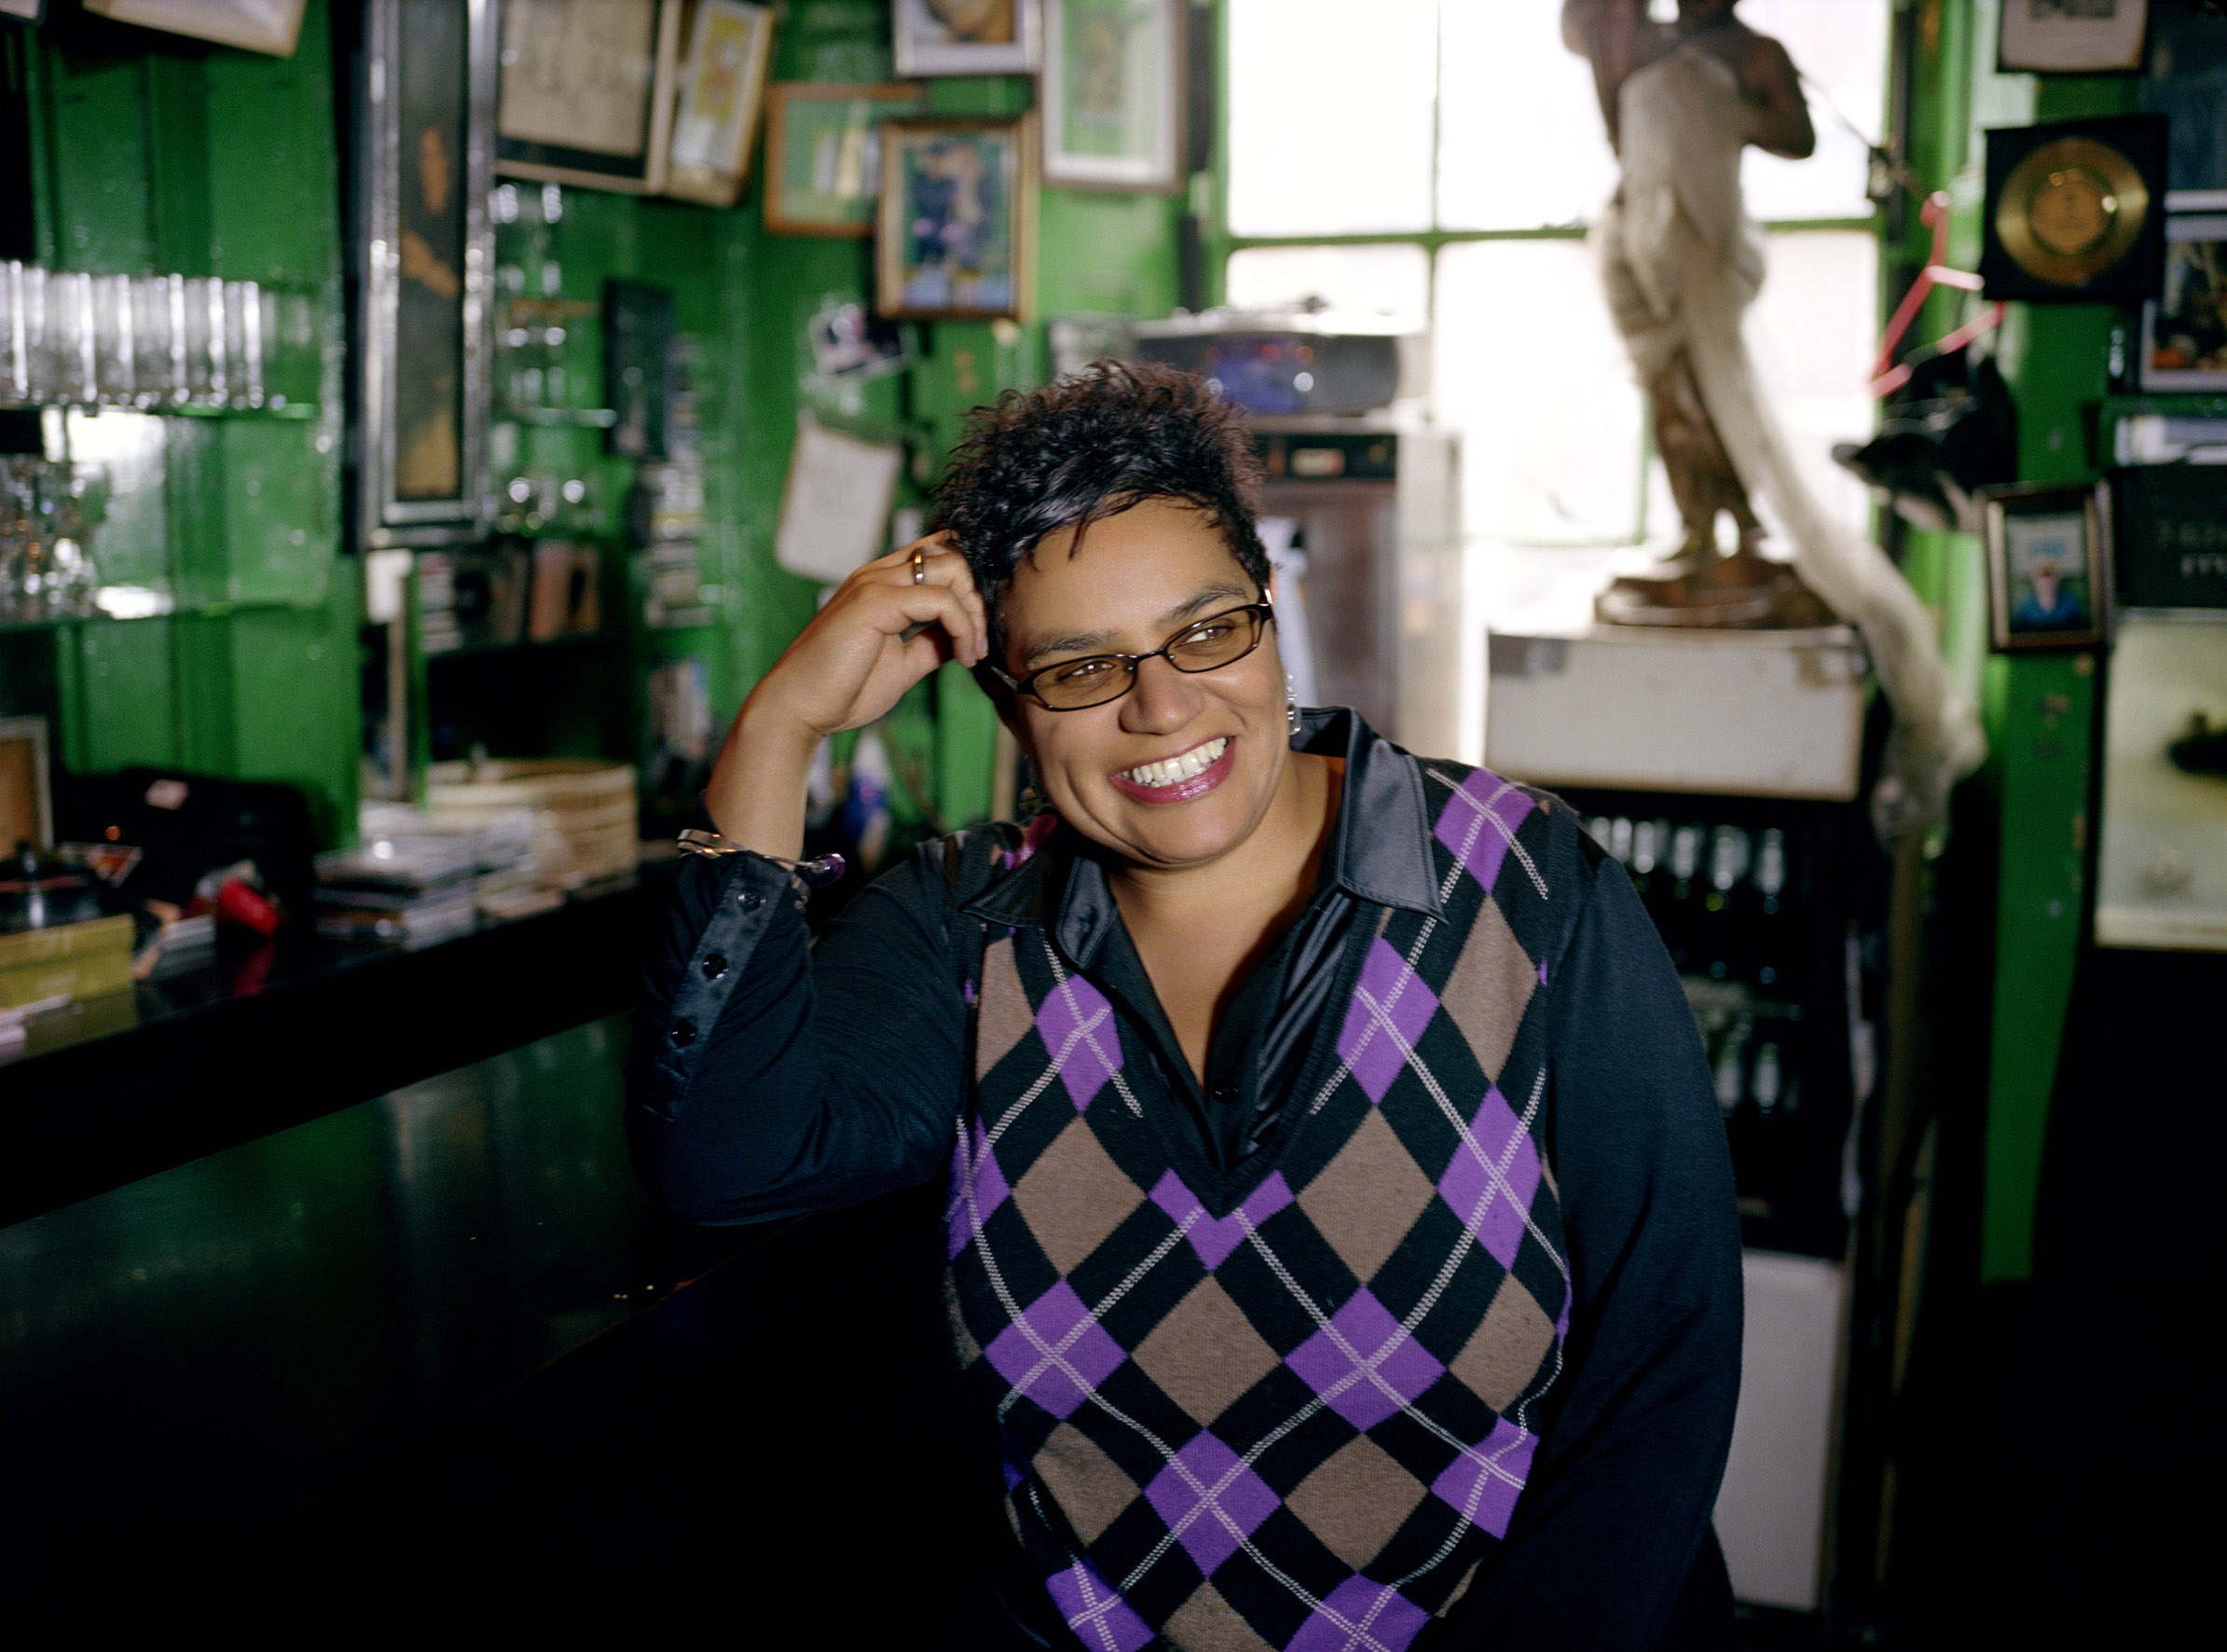 Jackie Kay image by Mary McCartney